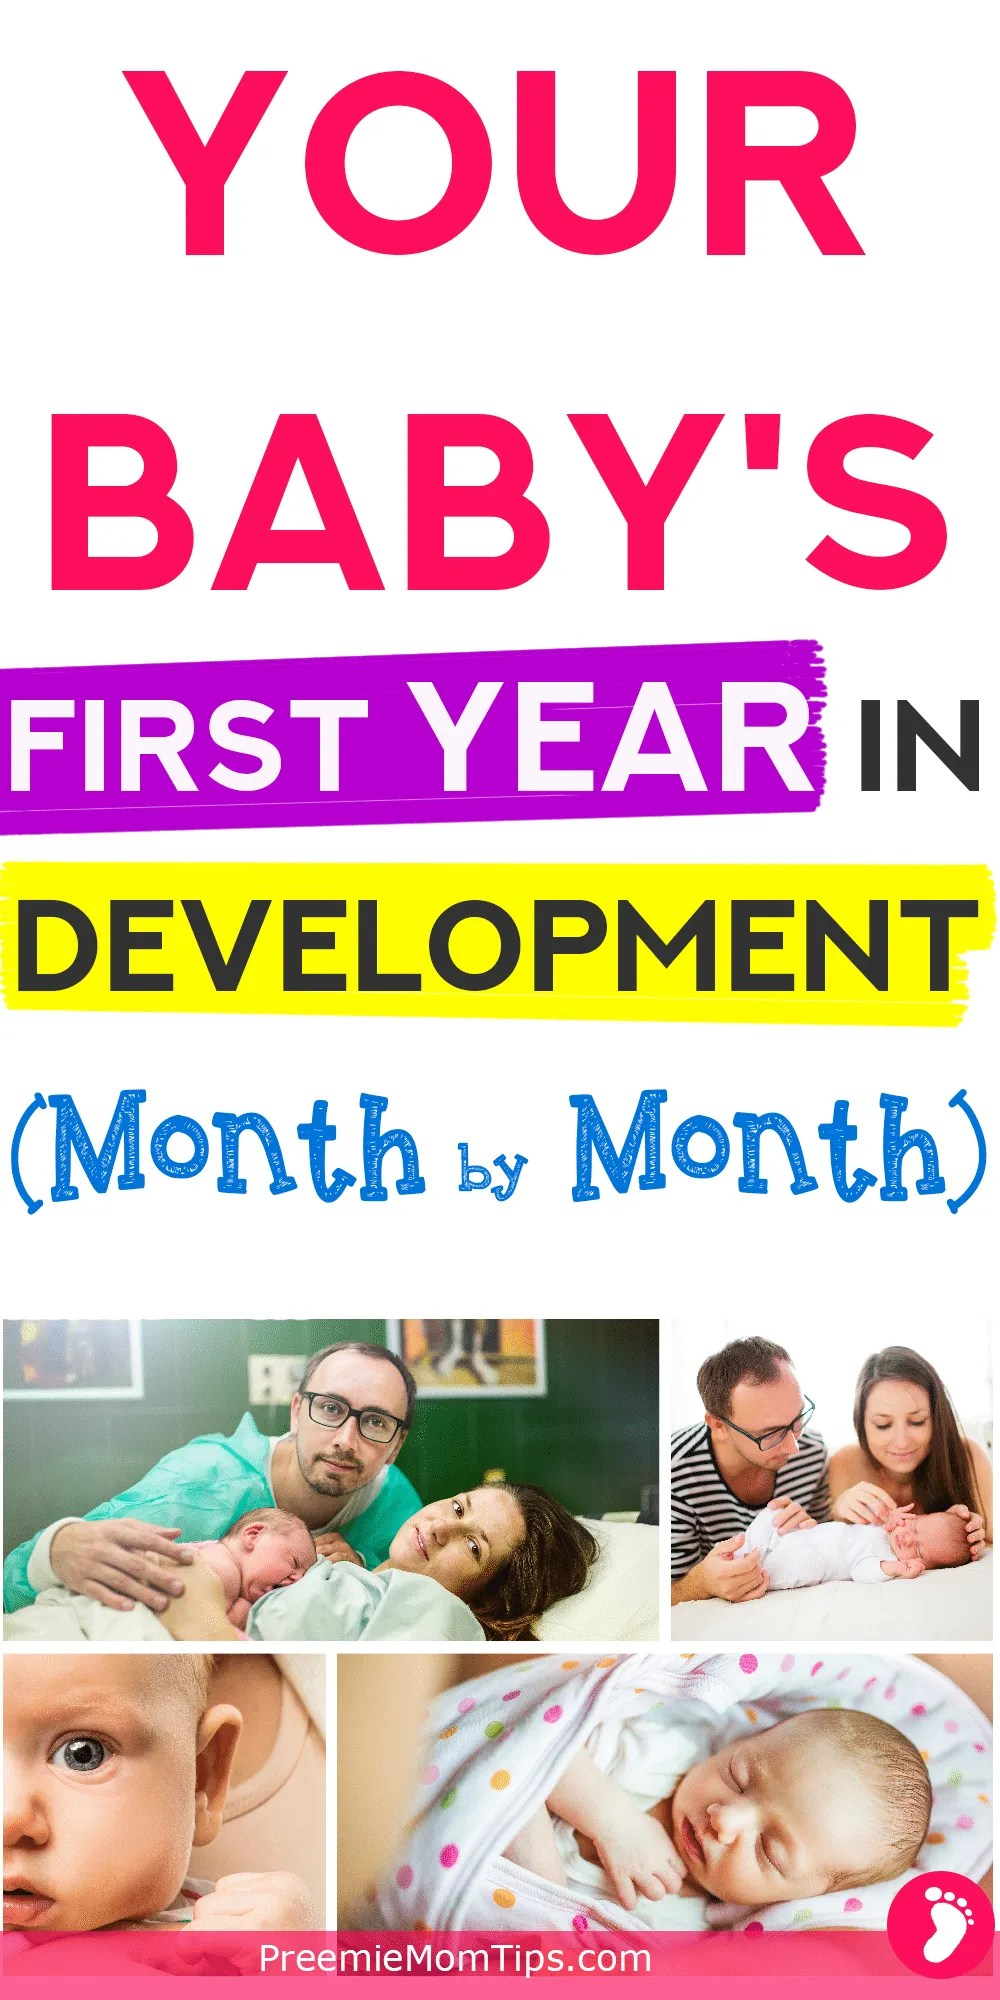 Track your baby's progress during the first year. Understand yoru baby's development month by month!